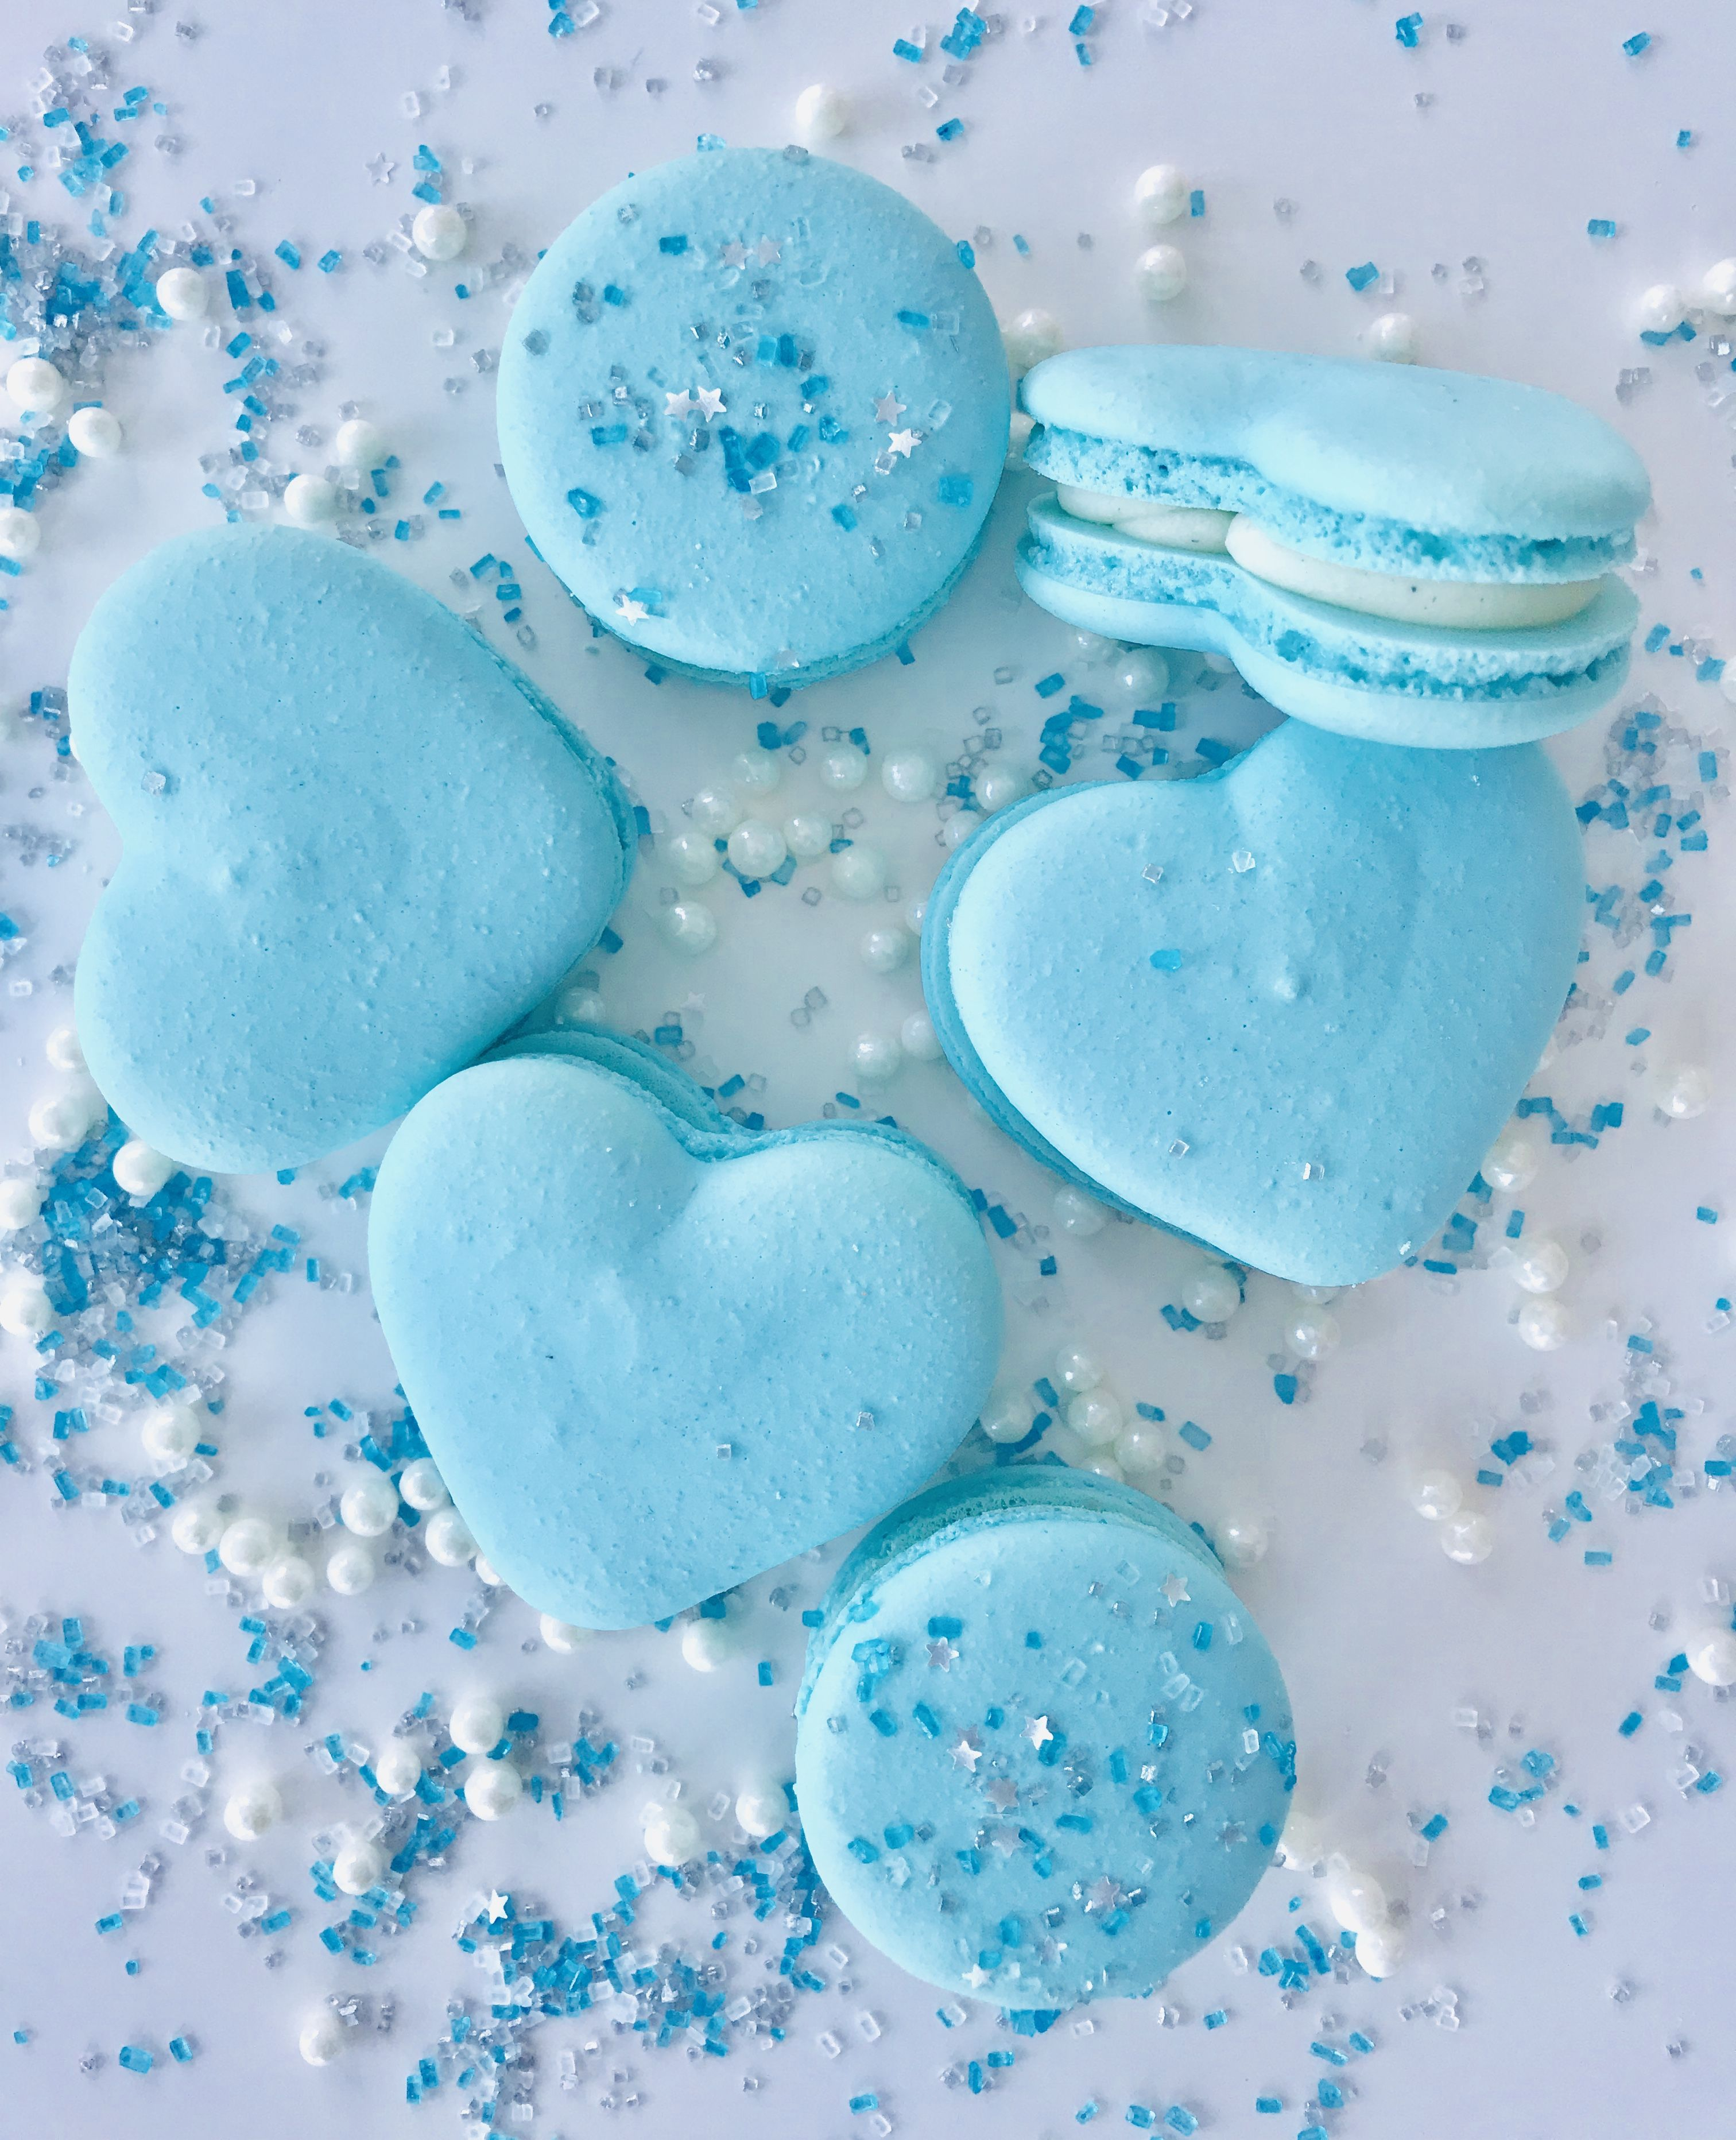 Blue Hearts Macarons Baby Blue Aesthetic Blue Aesthetic Pastel Cute Blue Wallpaper Aesthetic wallpaper blue heart